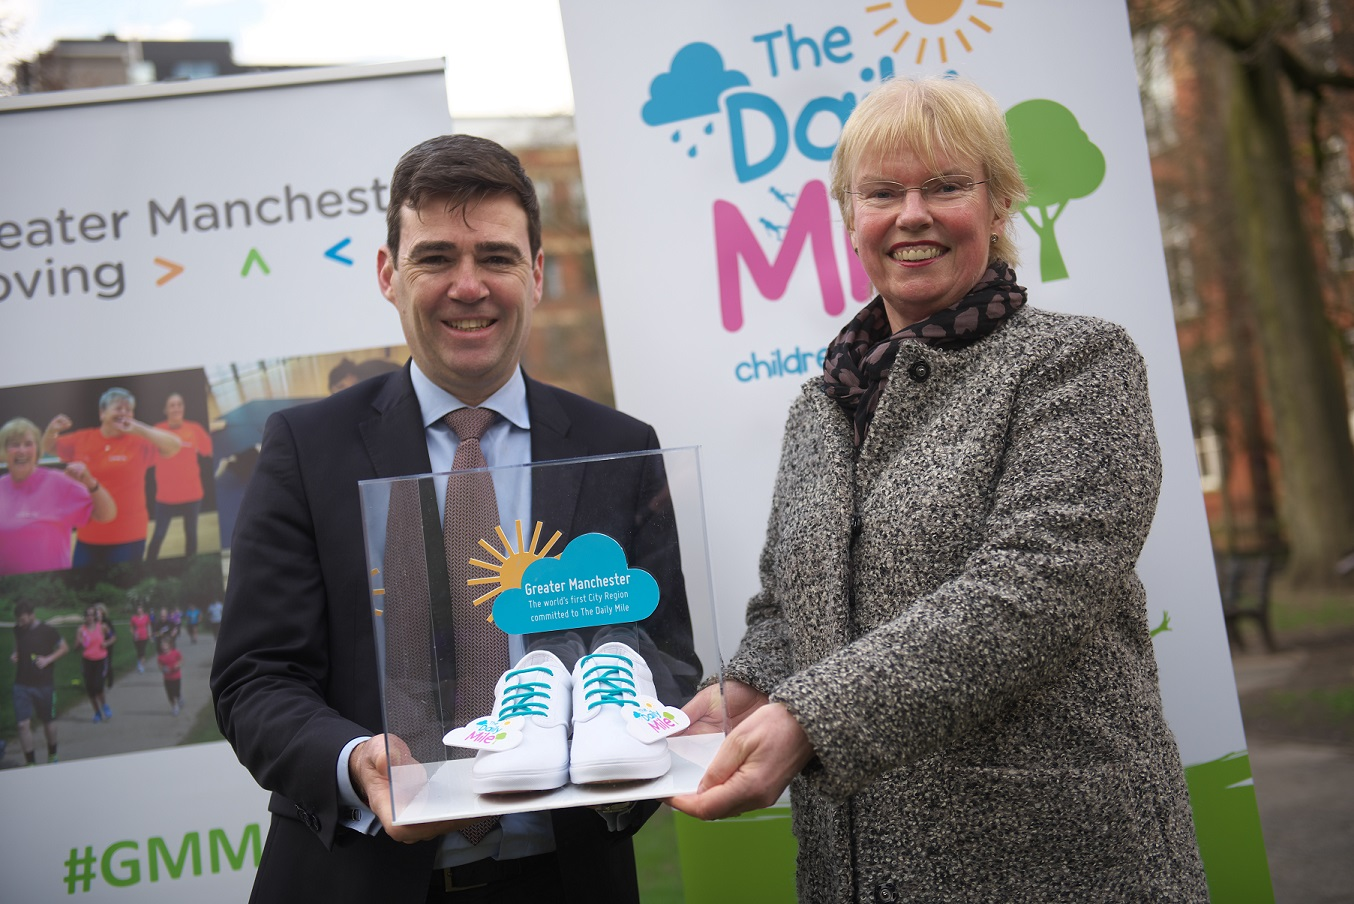 Eliane Wyllie presenting Andy Burham with special pair of 'The Daily Mile' plimsolls